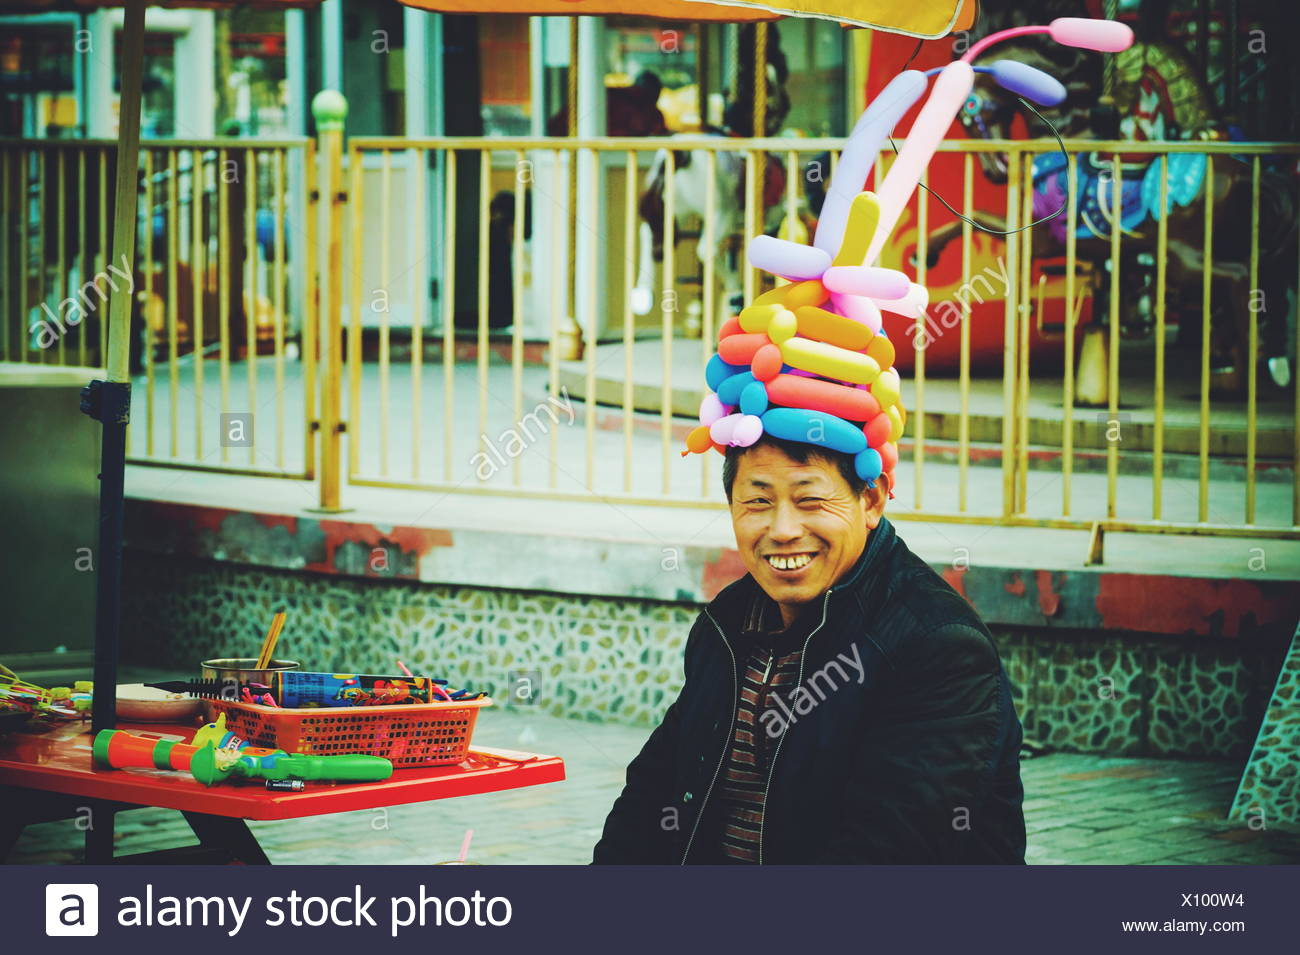 Happy Man Wearing Balloon Hat In Amusement Park - Stock Image